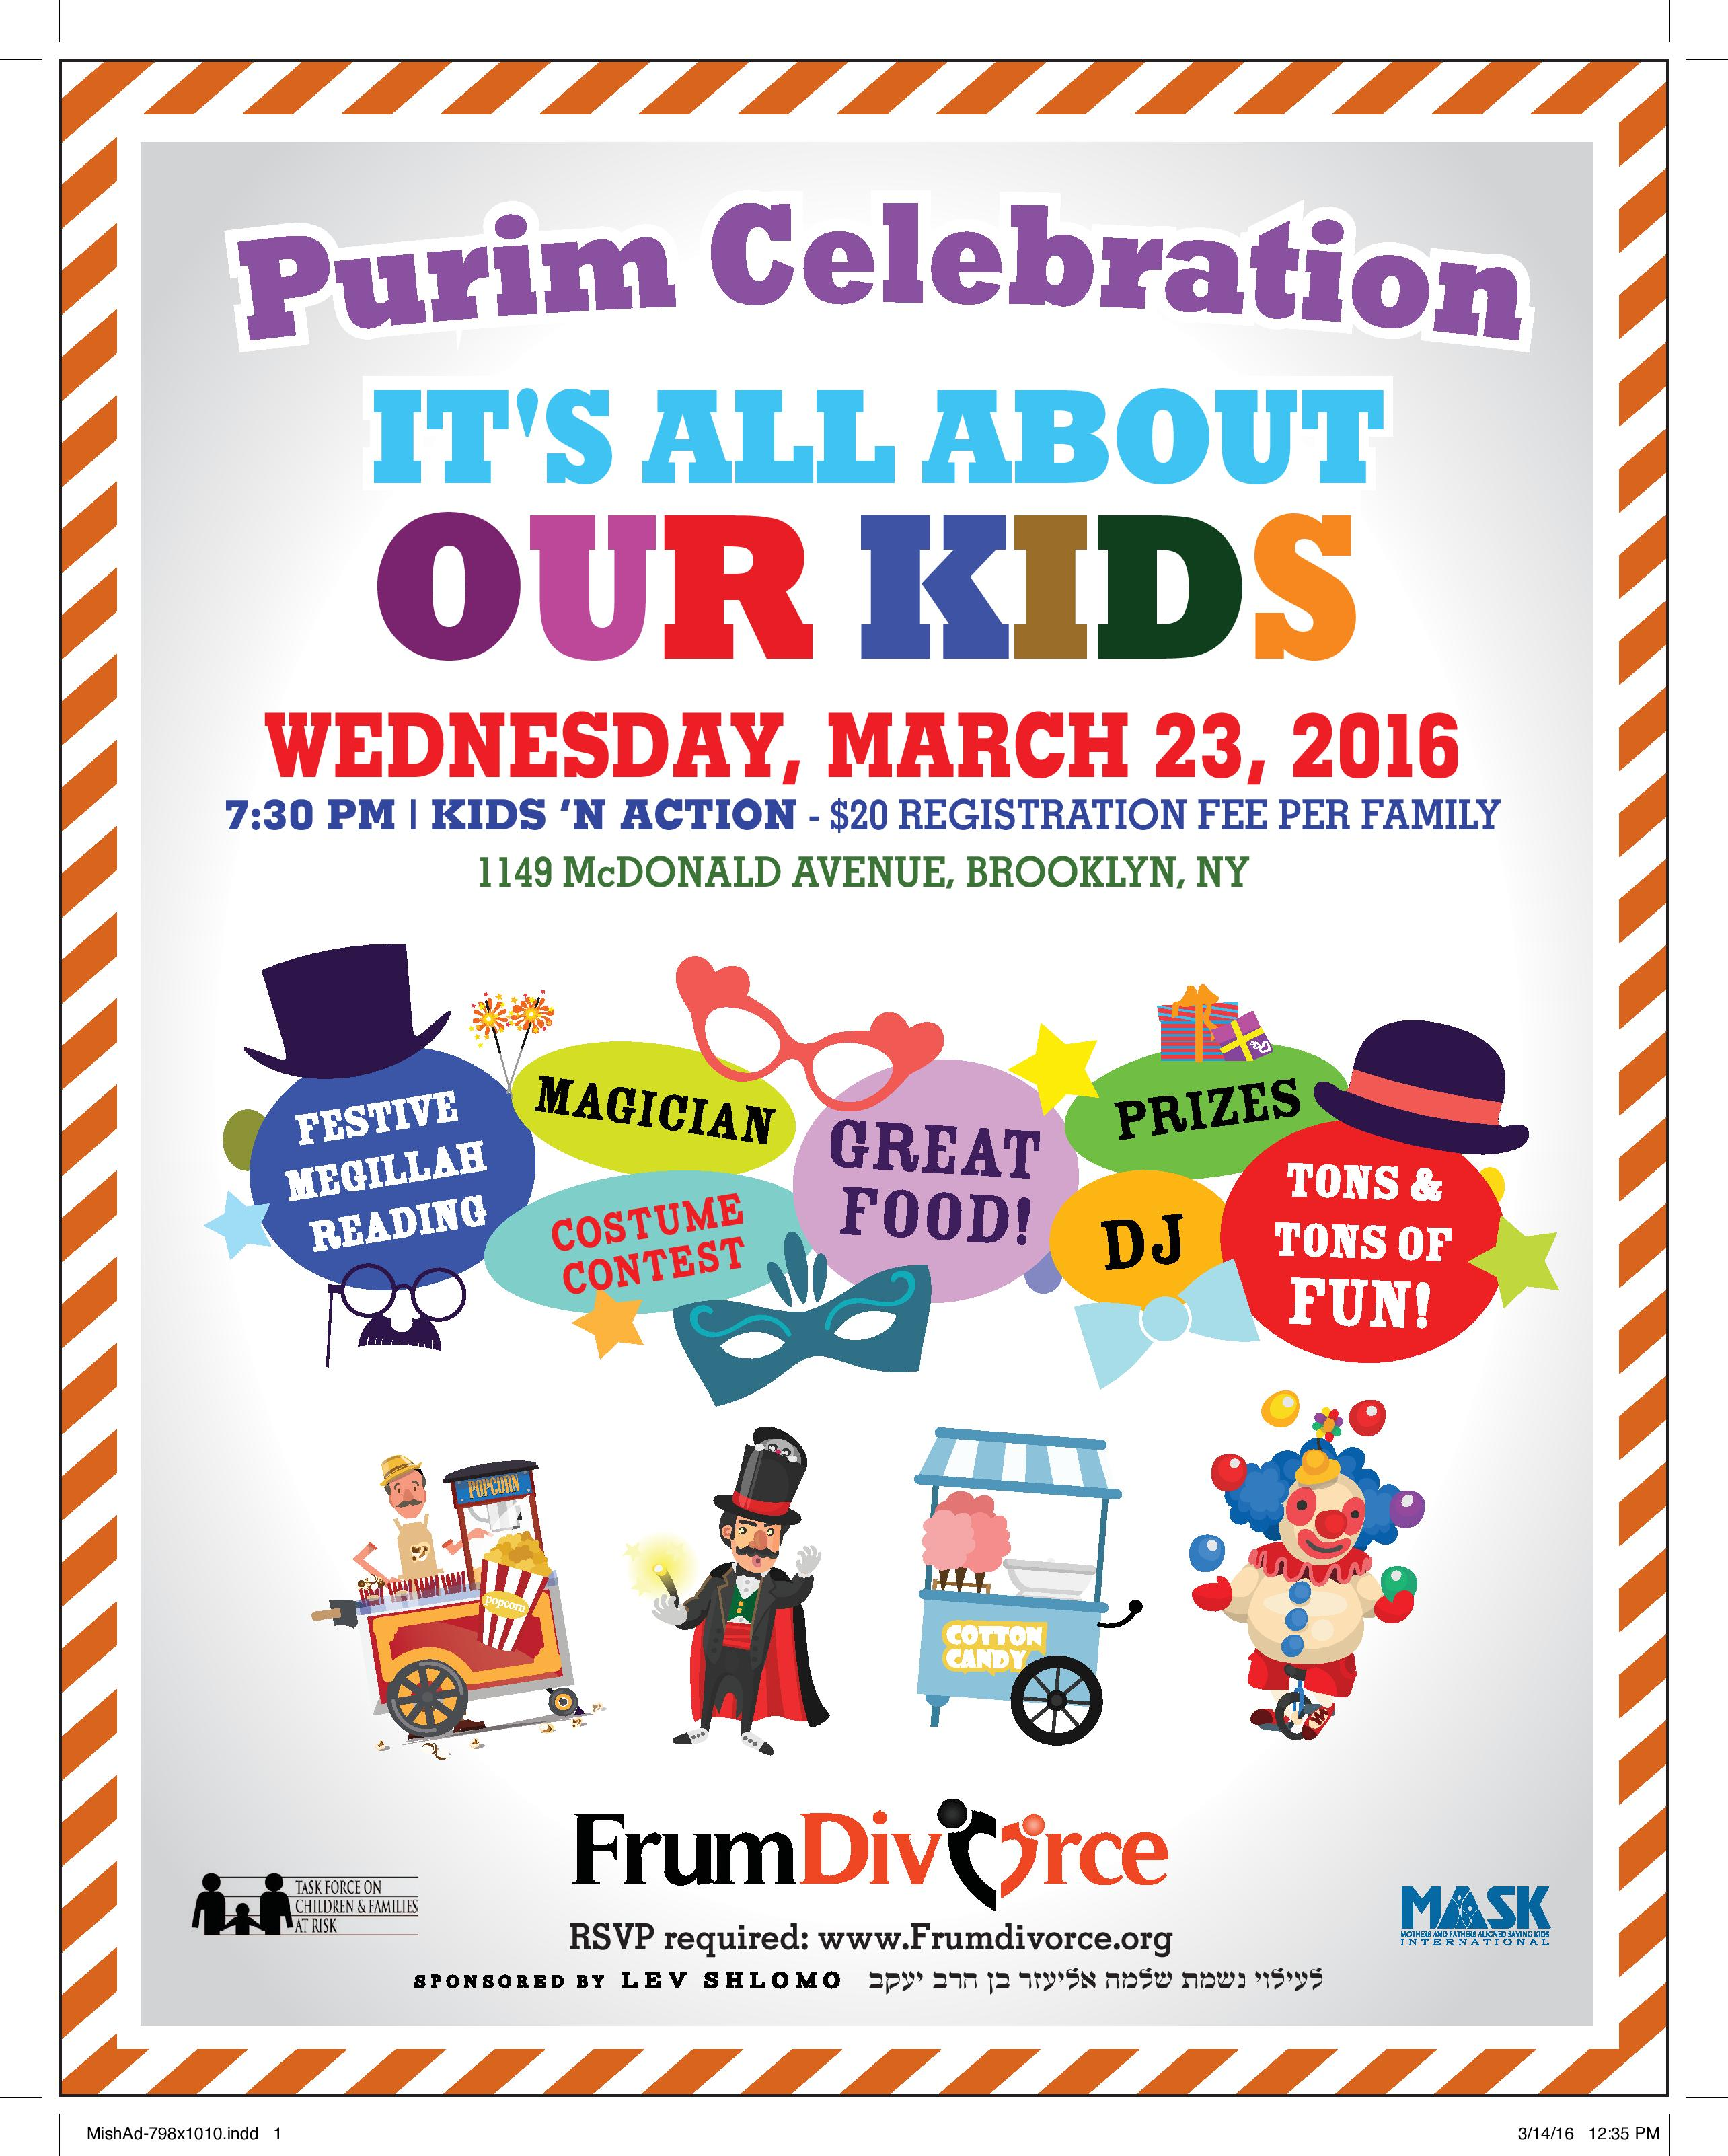 Purim Celebration: It's All About Our Kids